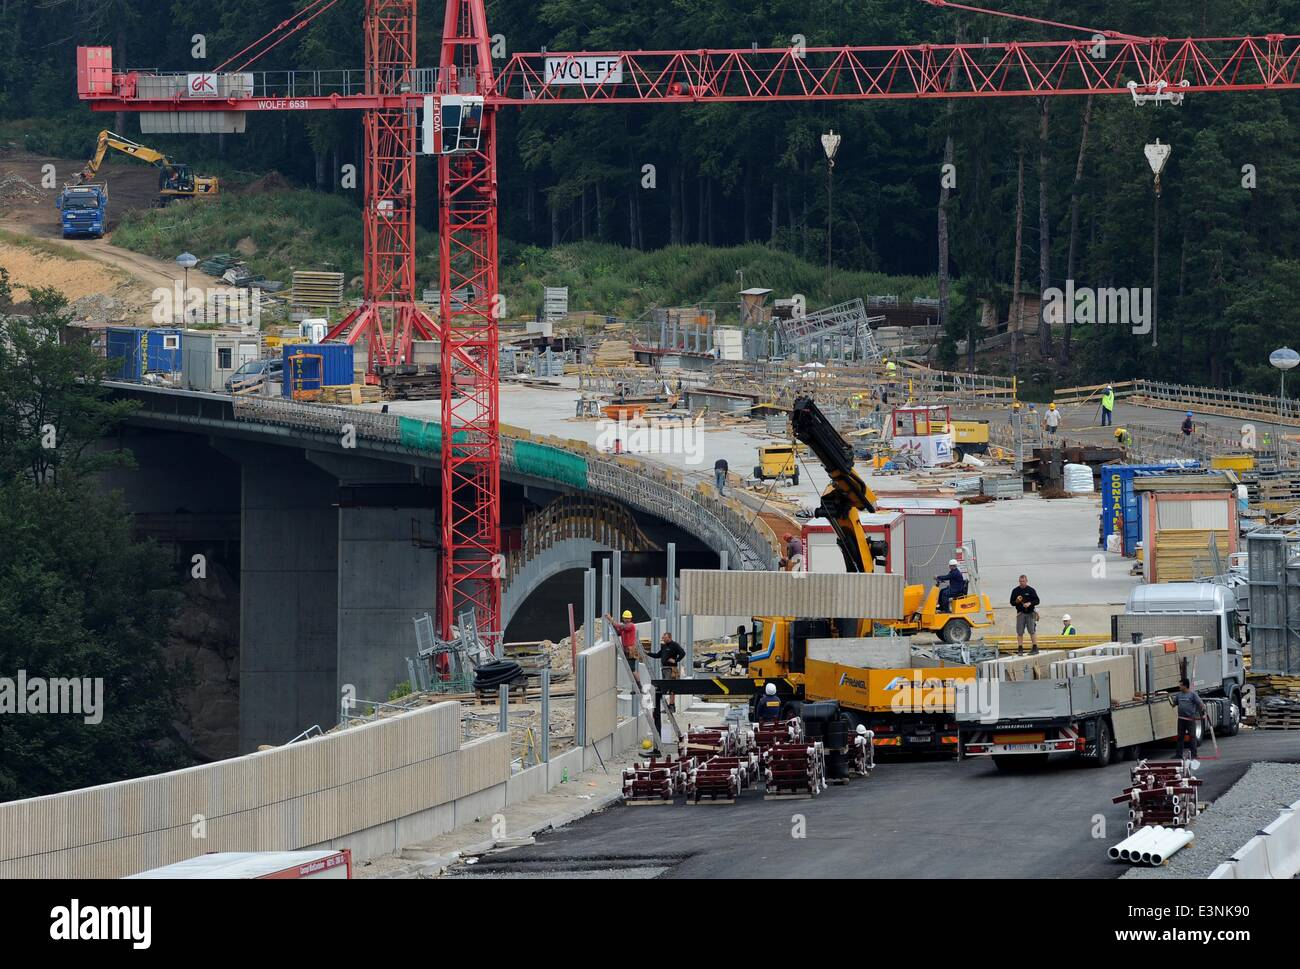 Freistadt, Austria. 25th June, 2014. Work on the second of three phases of construction of the expressway S3 to - Stock Image